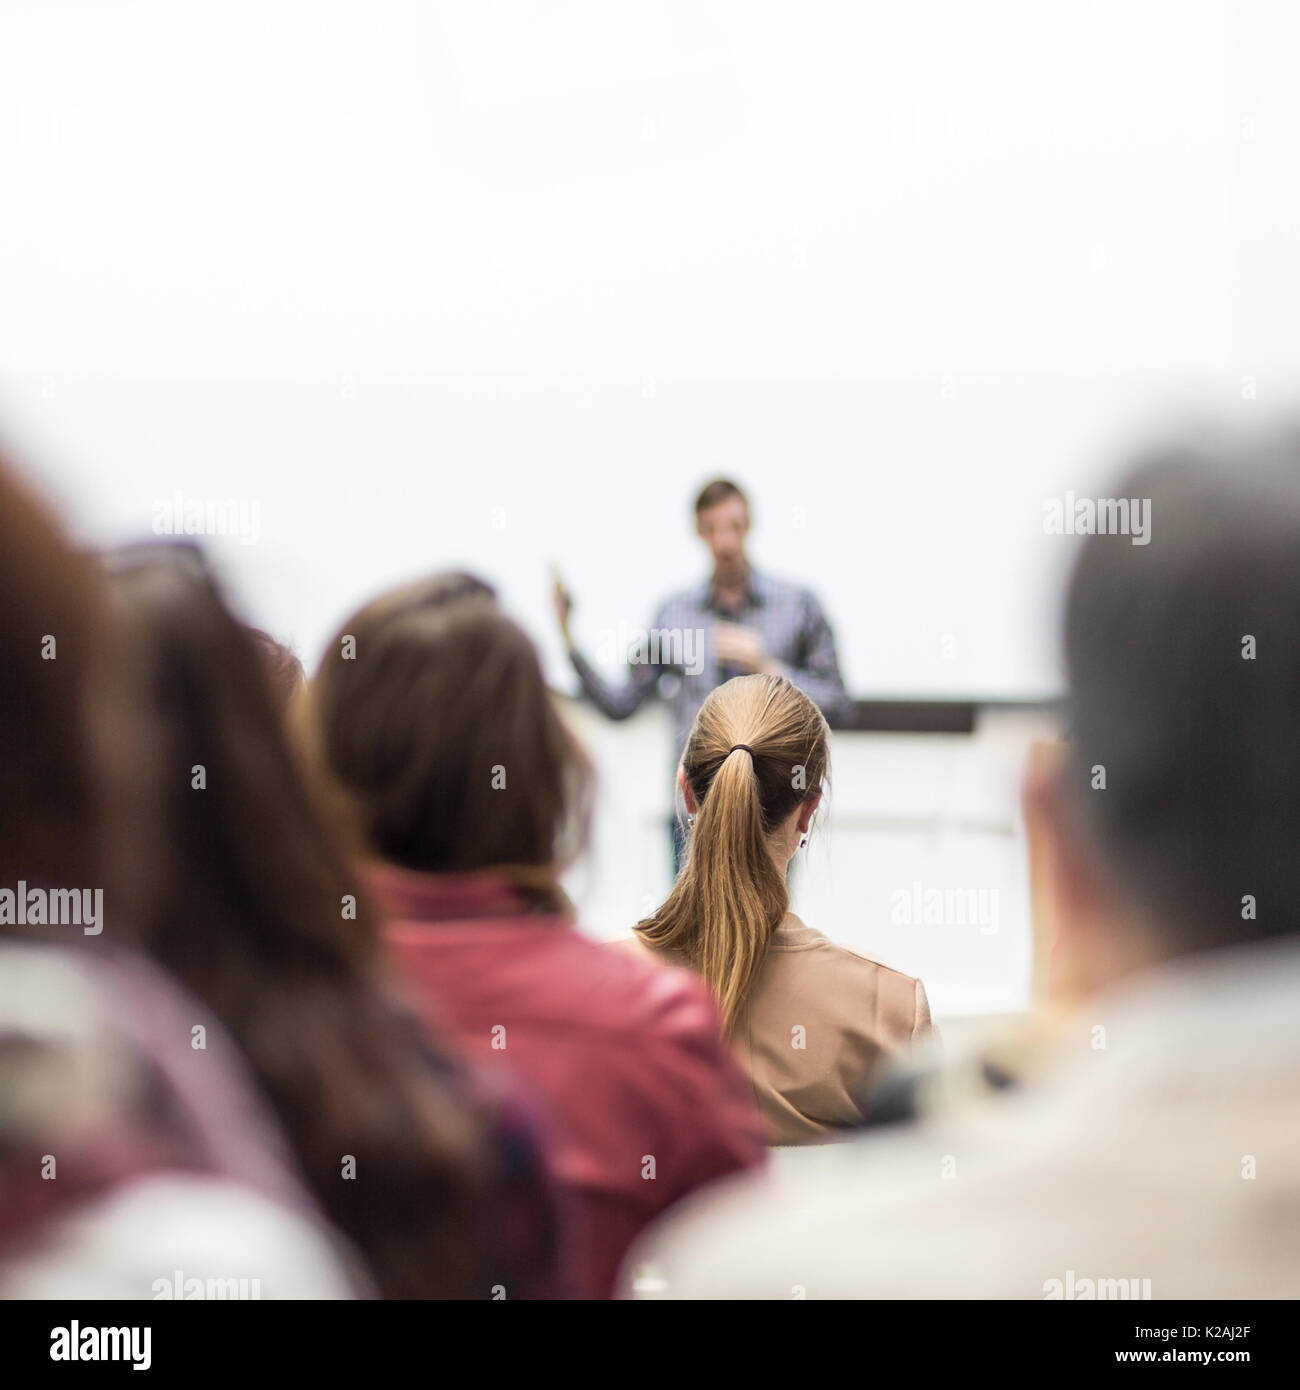 Public speaker giving talk at Business Event. - Stock Image